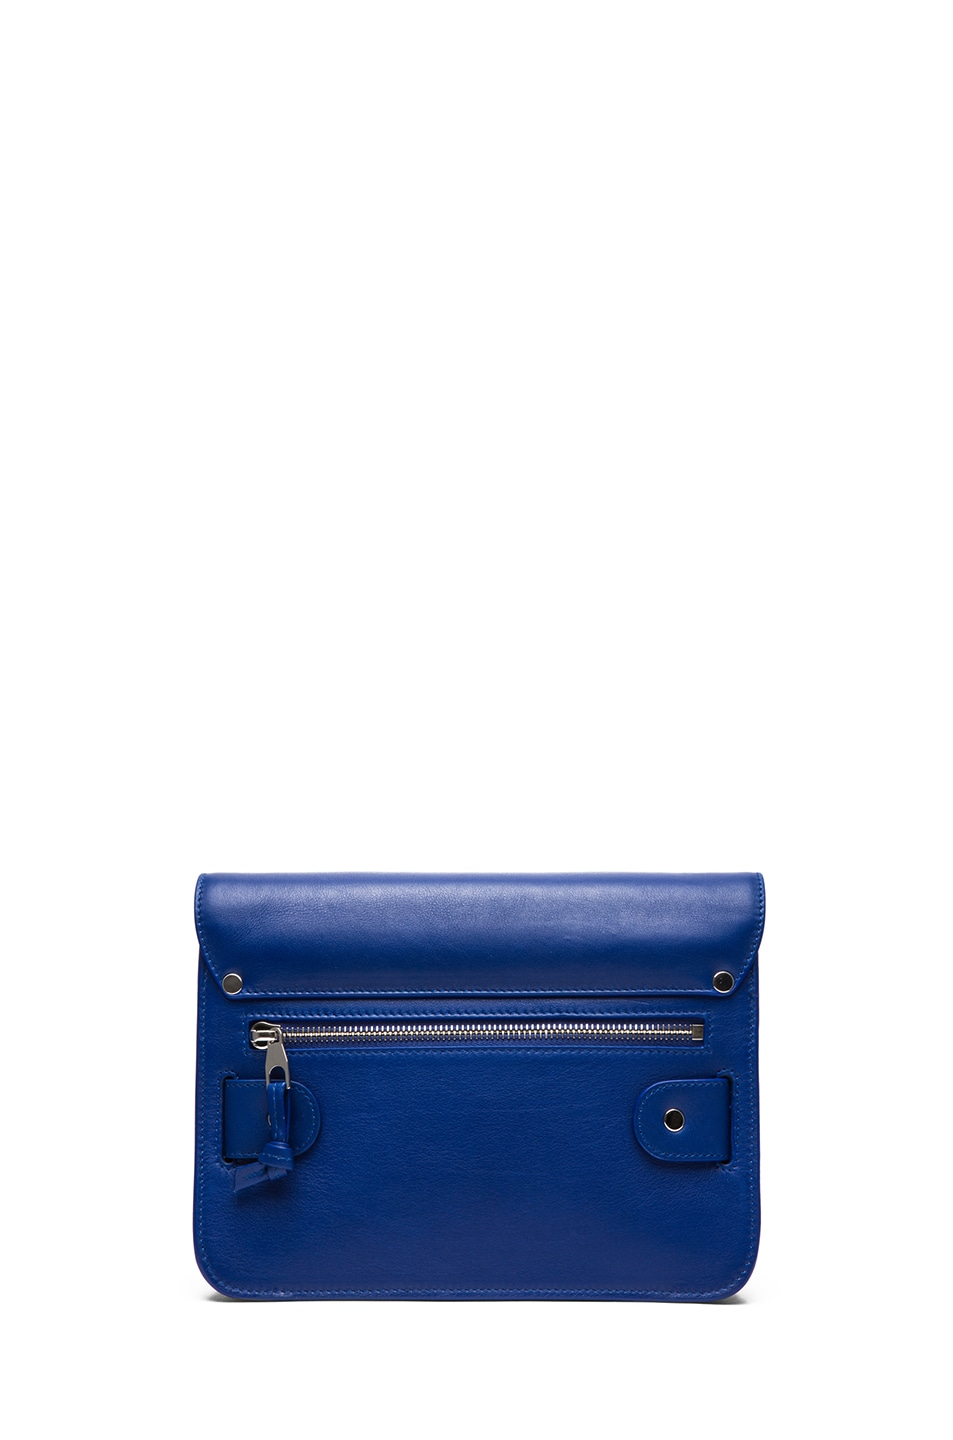 Image 2 of Proenza Schouler Mini PS11 Classic Smooth Leather Shoulder Bag in Royal Blue